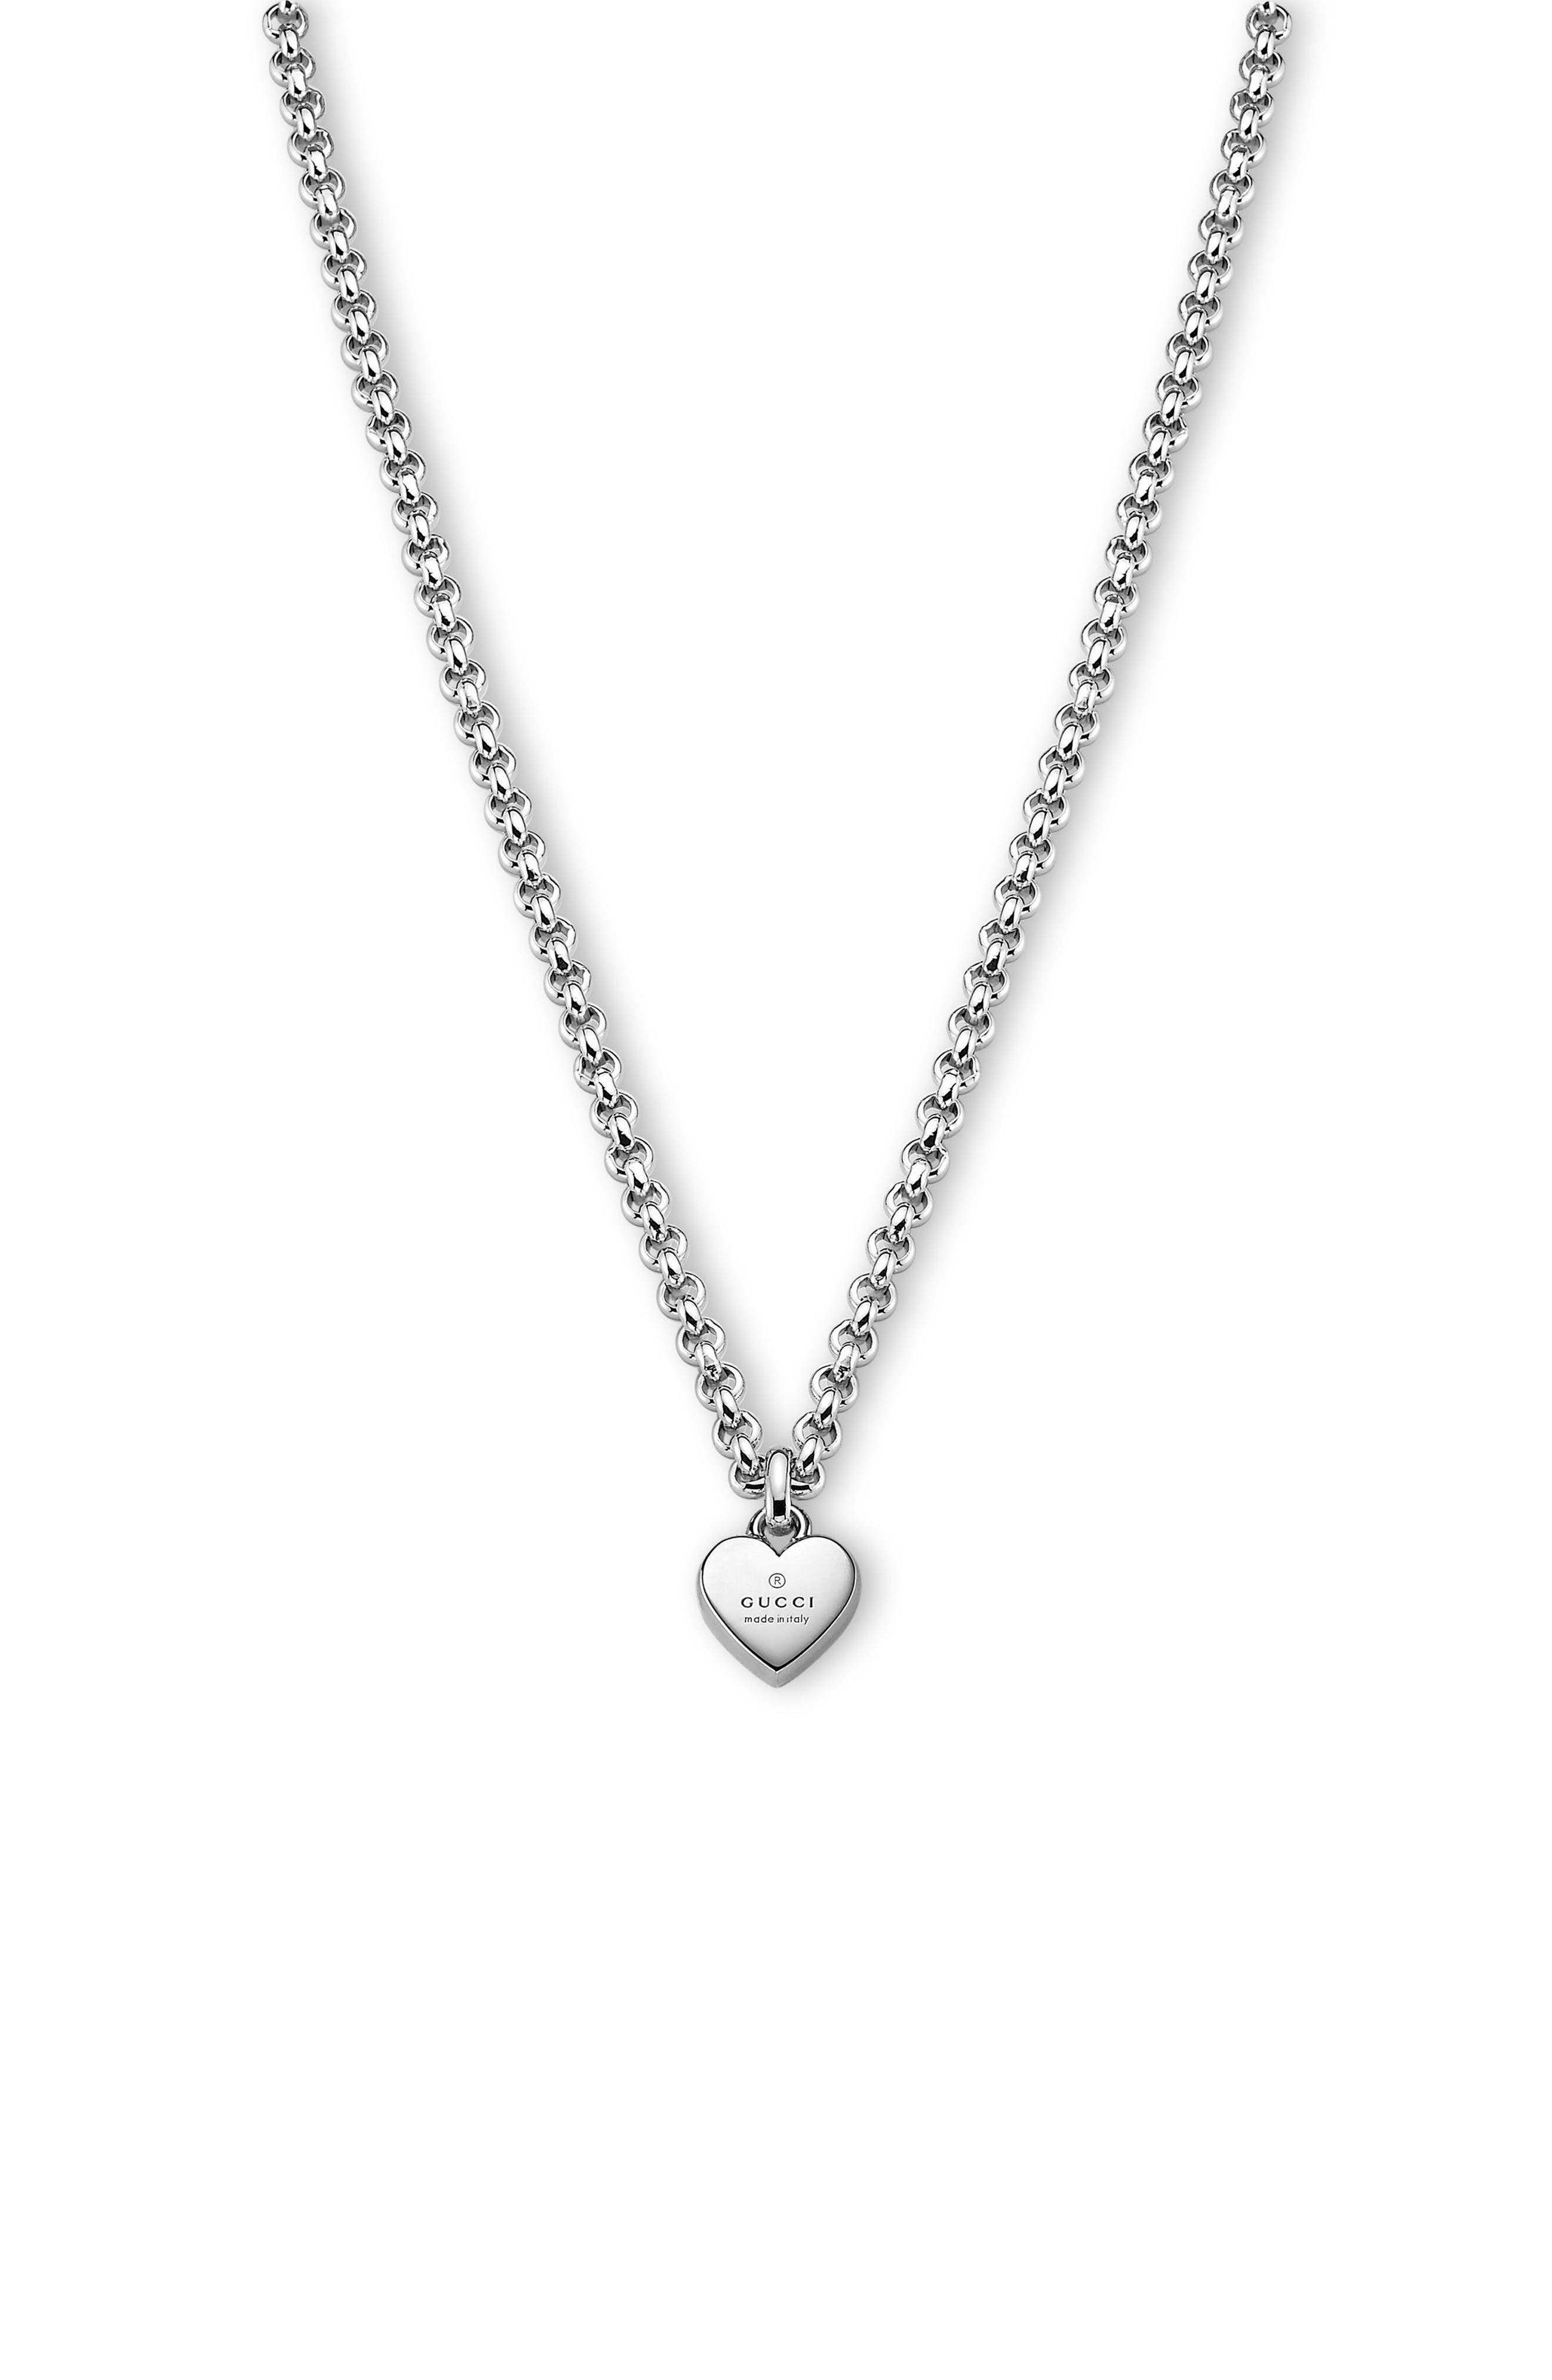 Trademark Heart Necklace,                         Main,                         color, Sterling Silver